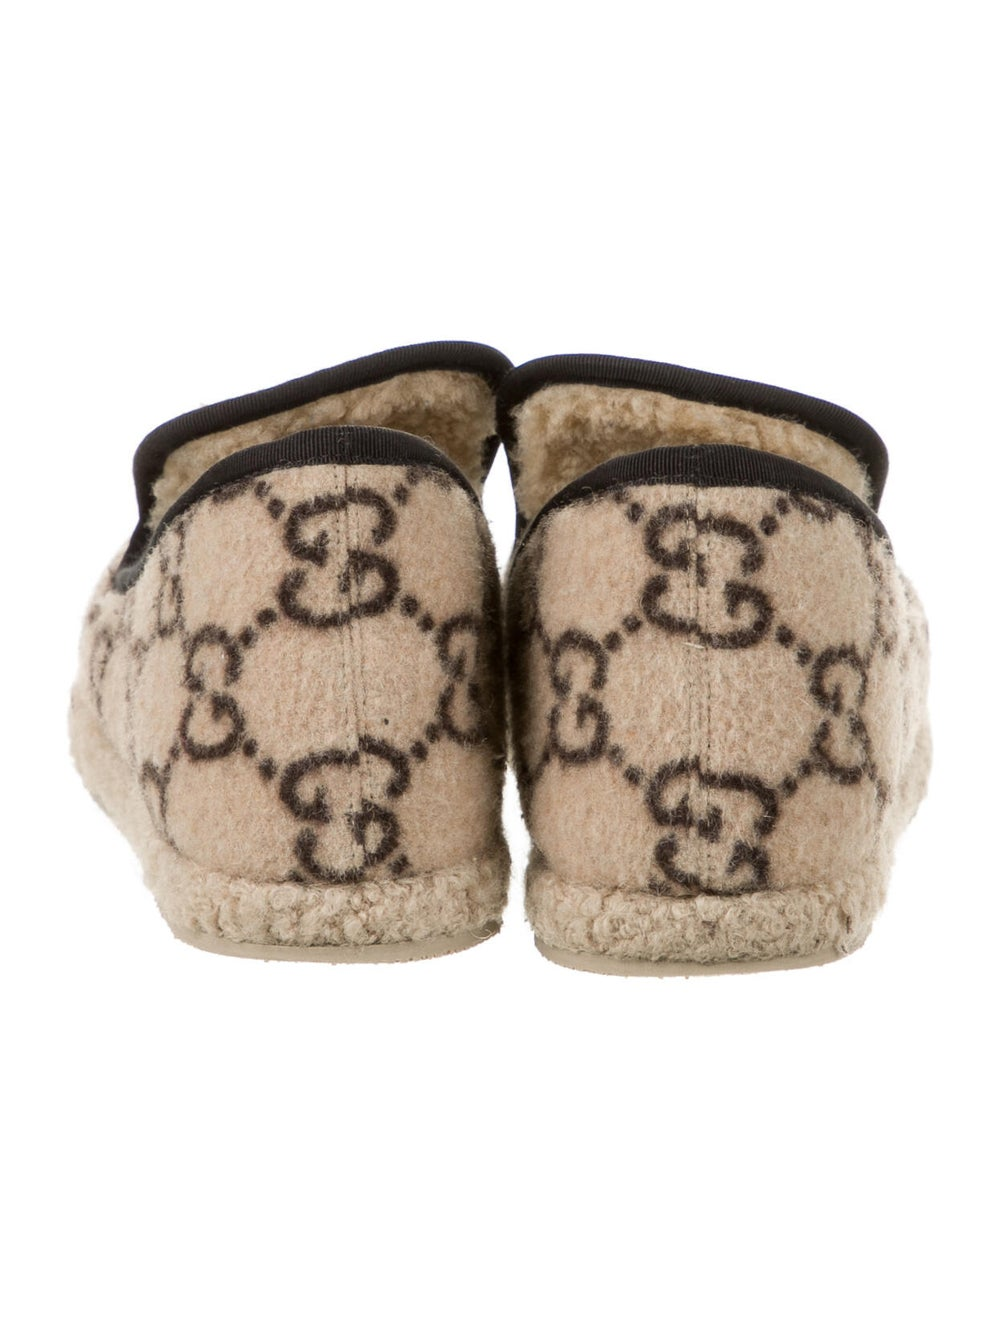 Gucci 1955 Horsebit Accent Slippers - image 4